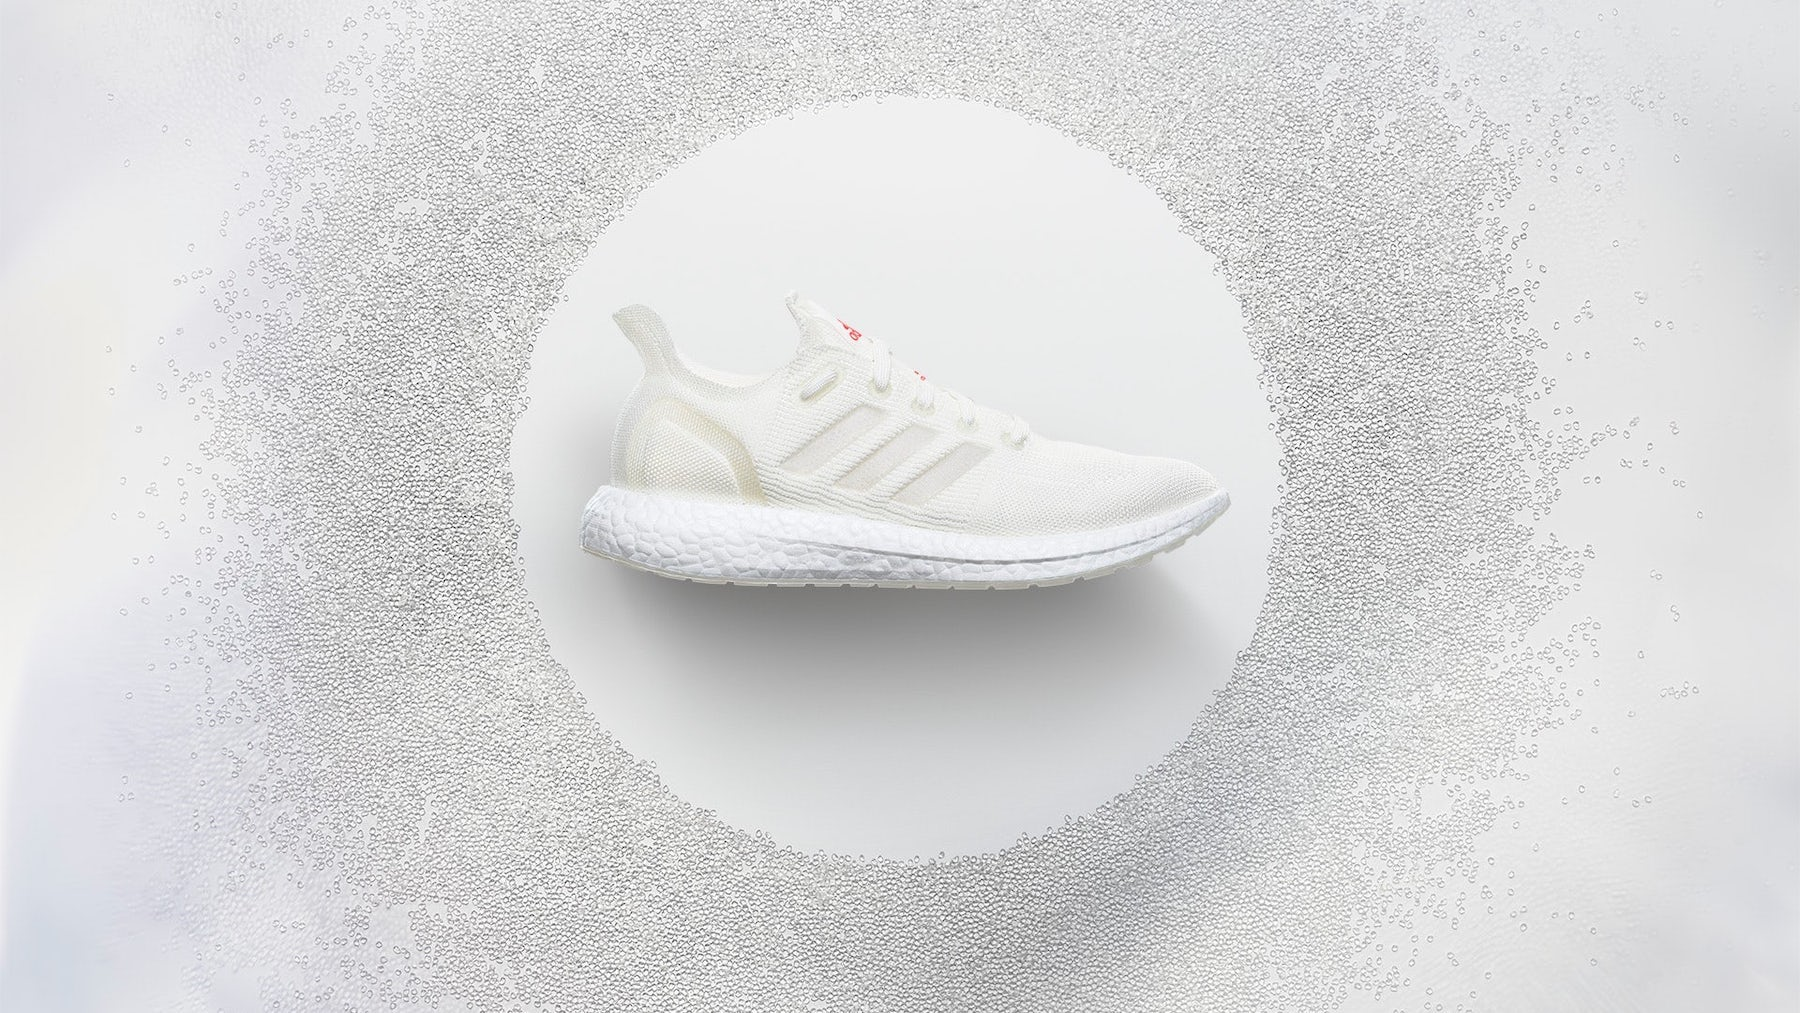 With its newest product, Adidas has cracked a decades-long quest to make a recyclable shoe   Source: Courtesy